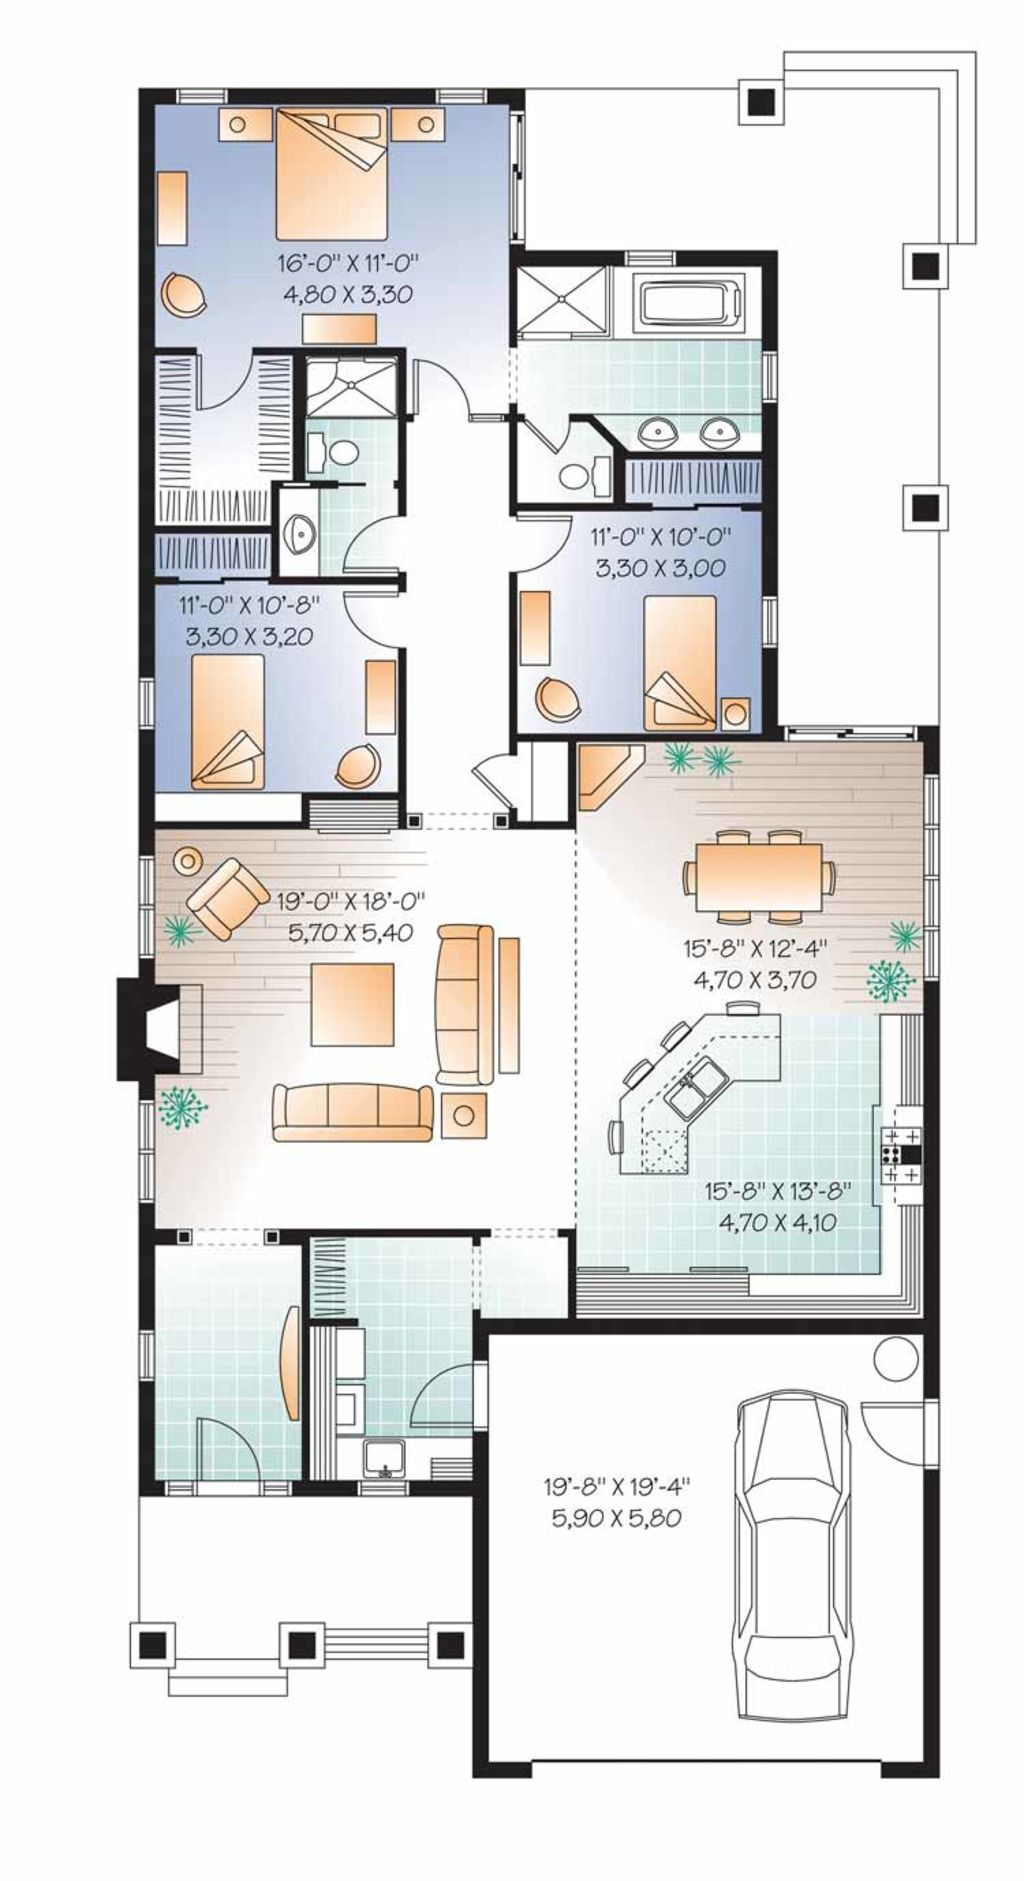 Traditional Style House Plan 3 Beds 2 Baths 1838 Sq Ft Plan 23 2532 New House Plans House Plans House Plans One Story